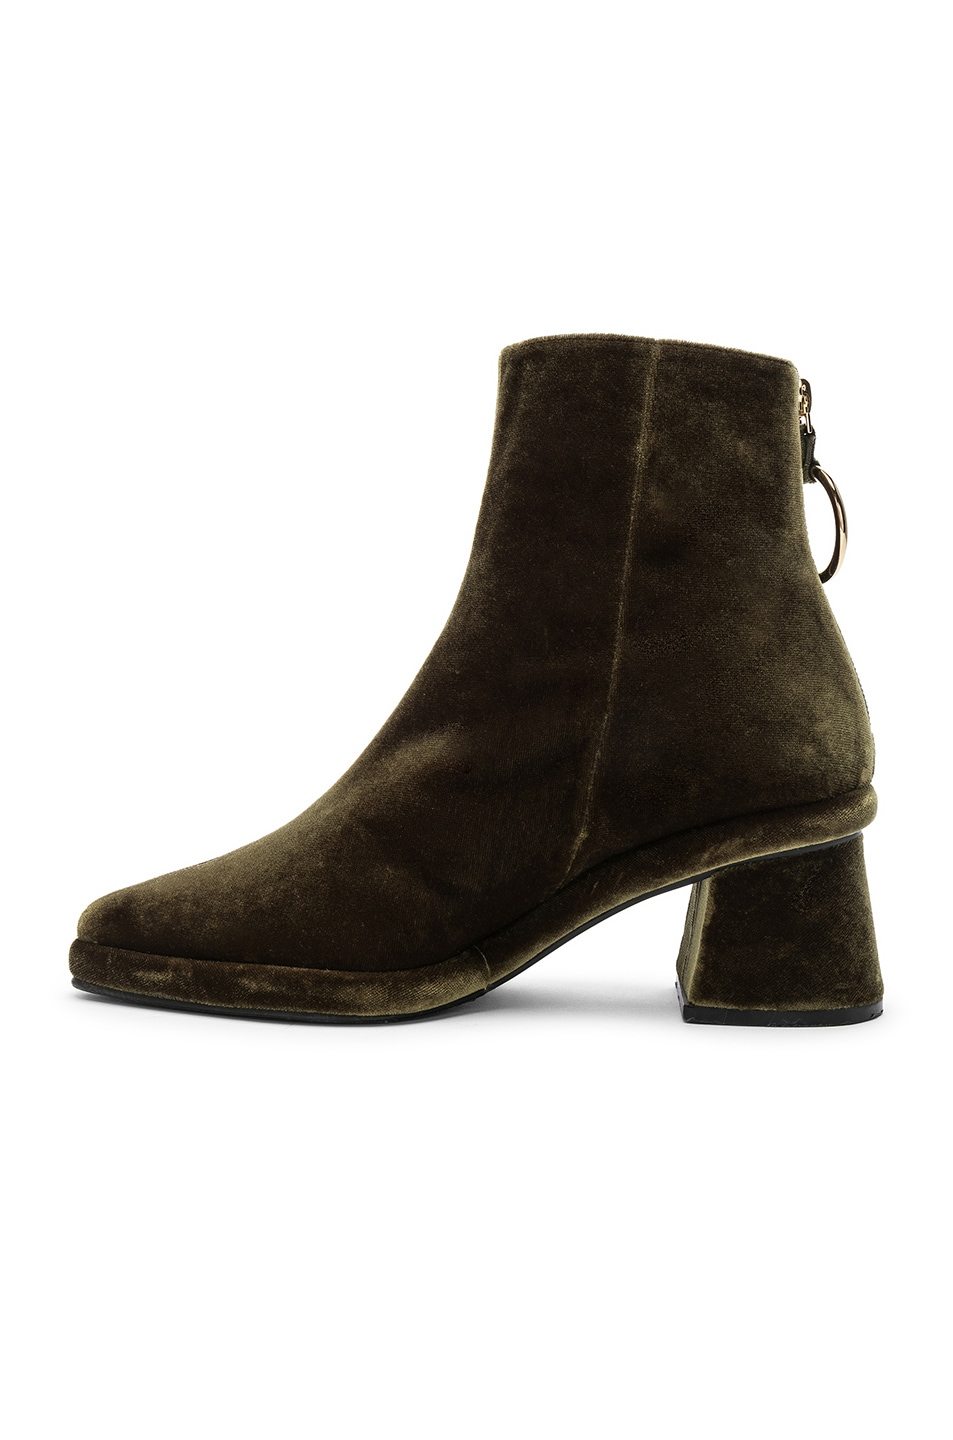 Image 5 of Reike Nen Ring Slim Boots in Green